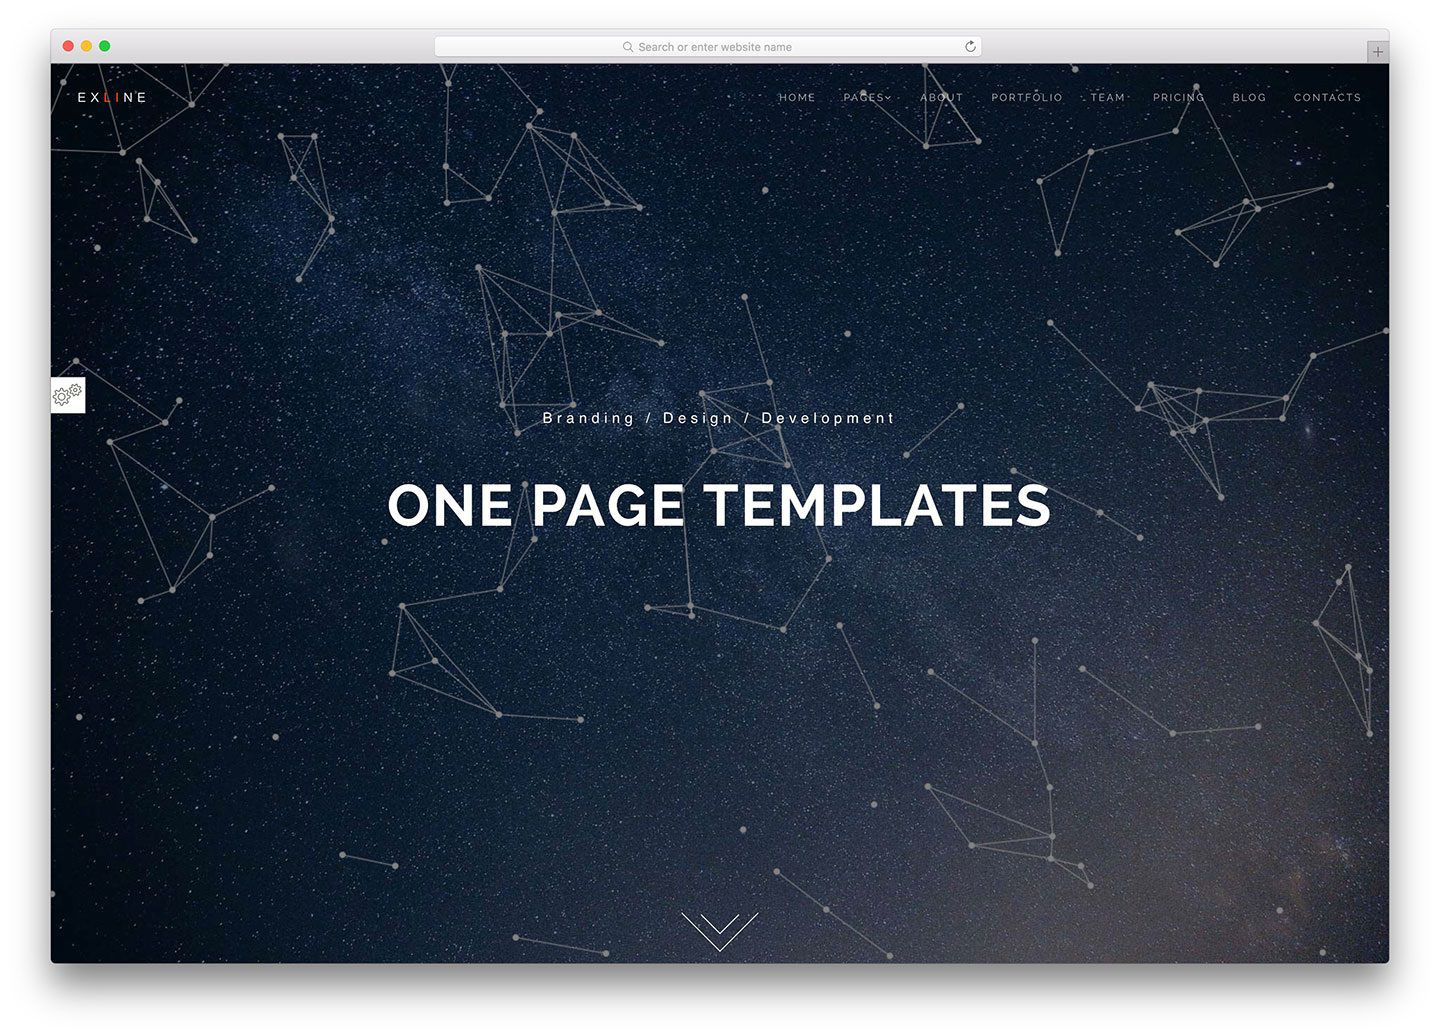 005 Impressive One Page Website Template Free Download Html5 High Definition  ParallaxFull